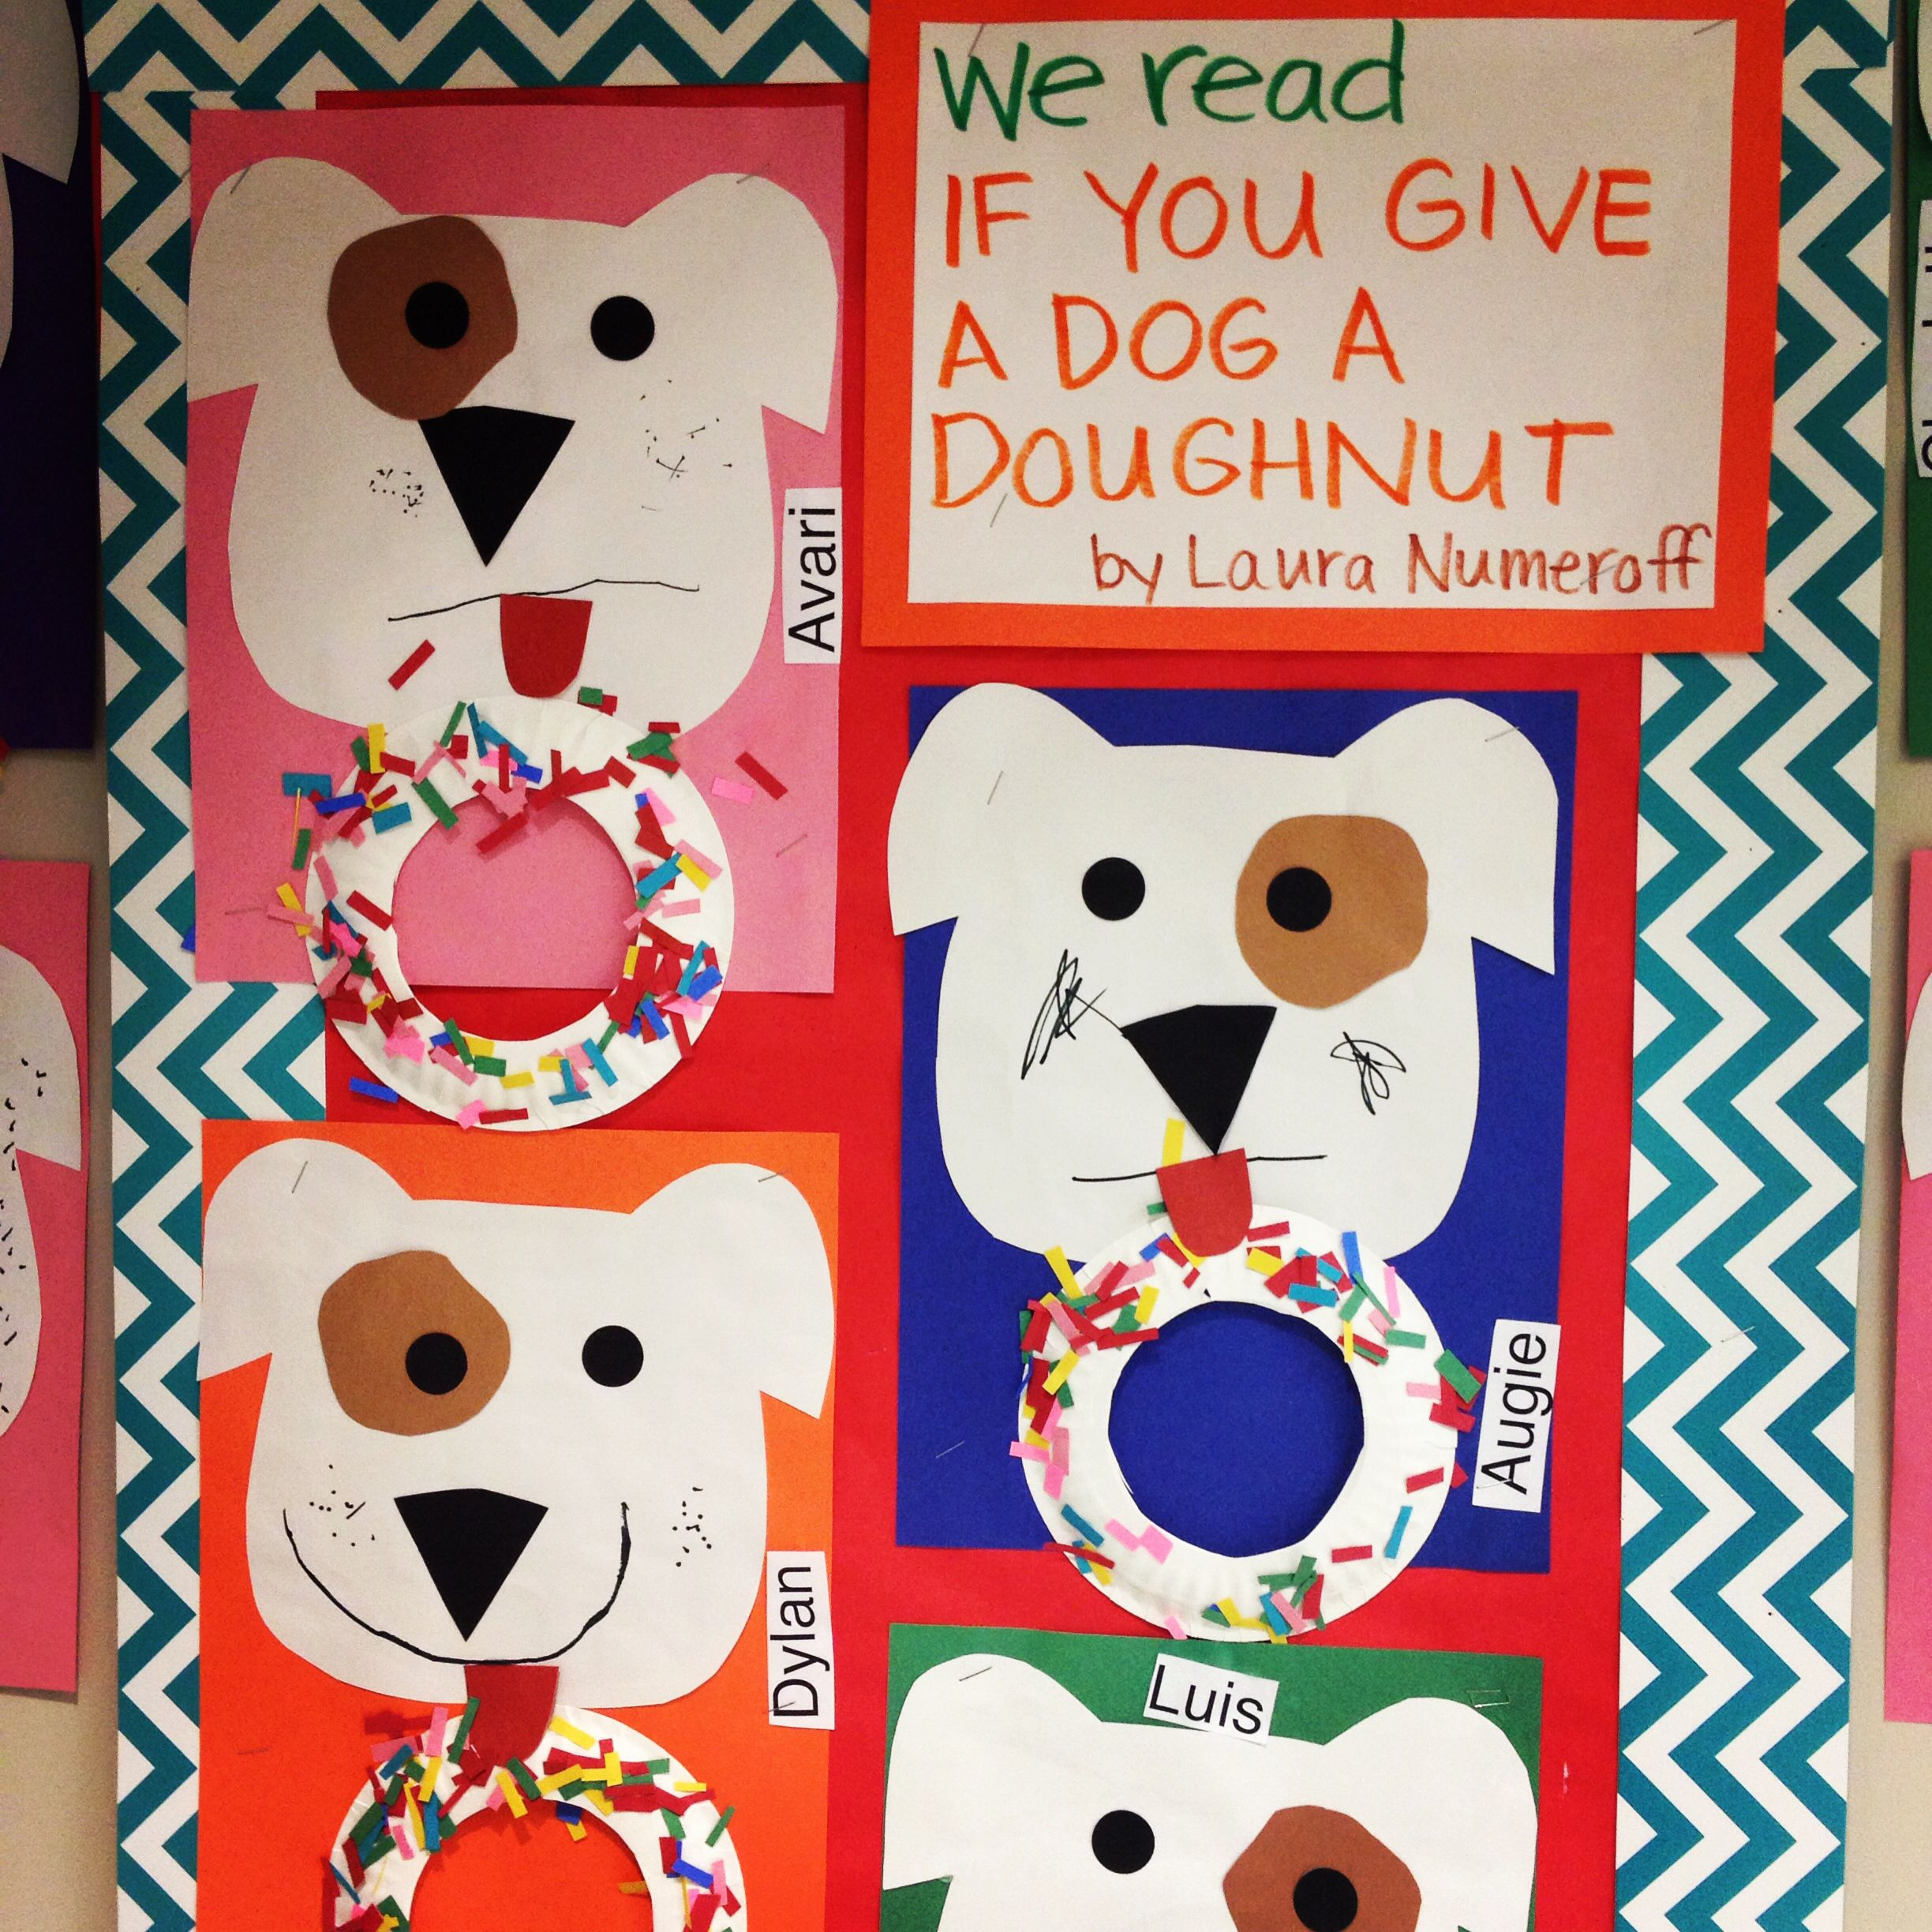 Donuts clipart if you give a dog a donut. Doughnut by laura numeroff